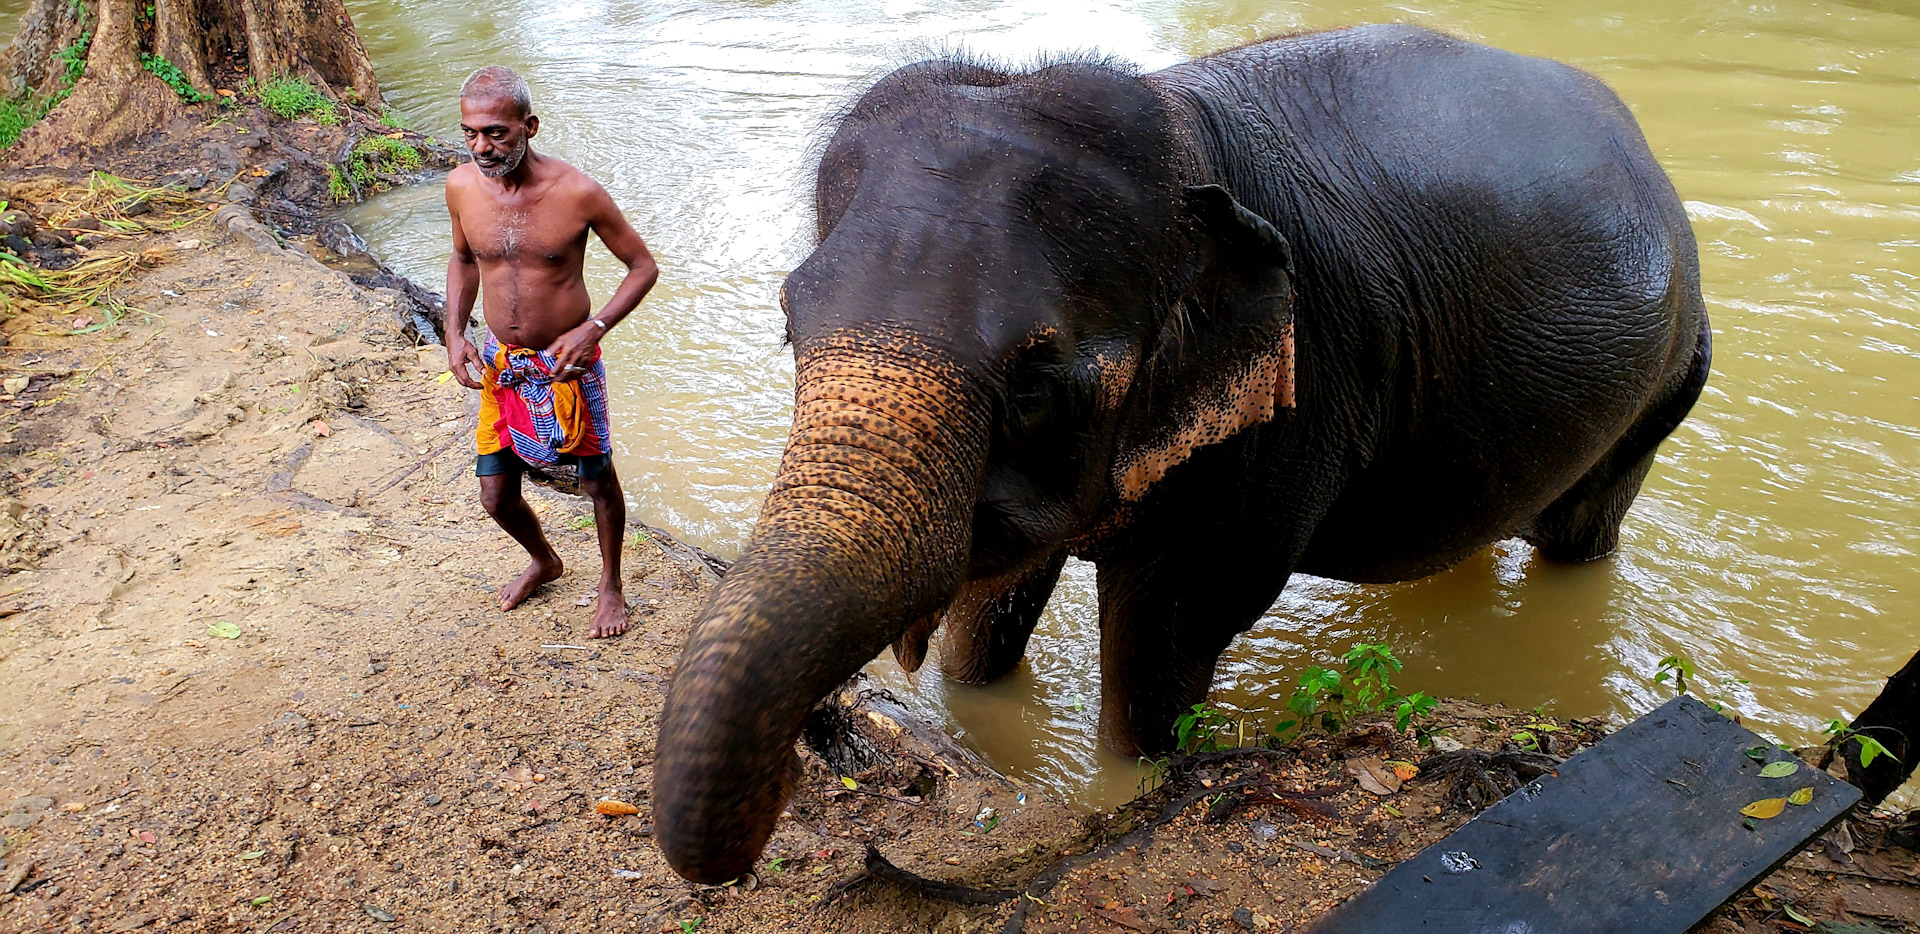 Elephant and Mahout in River